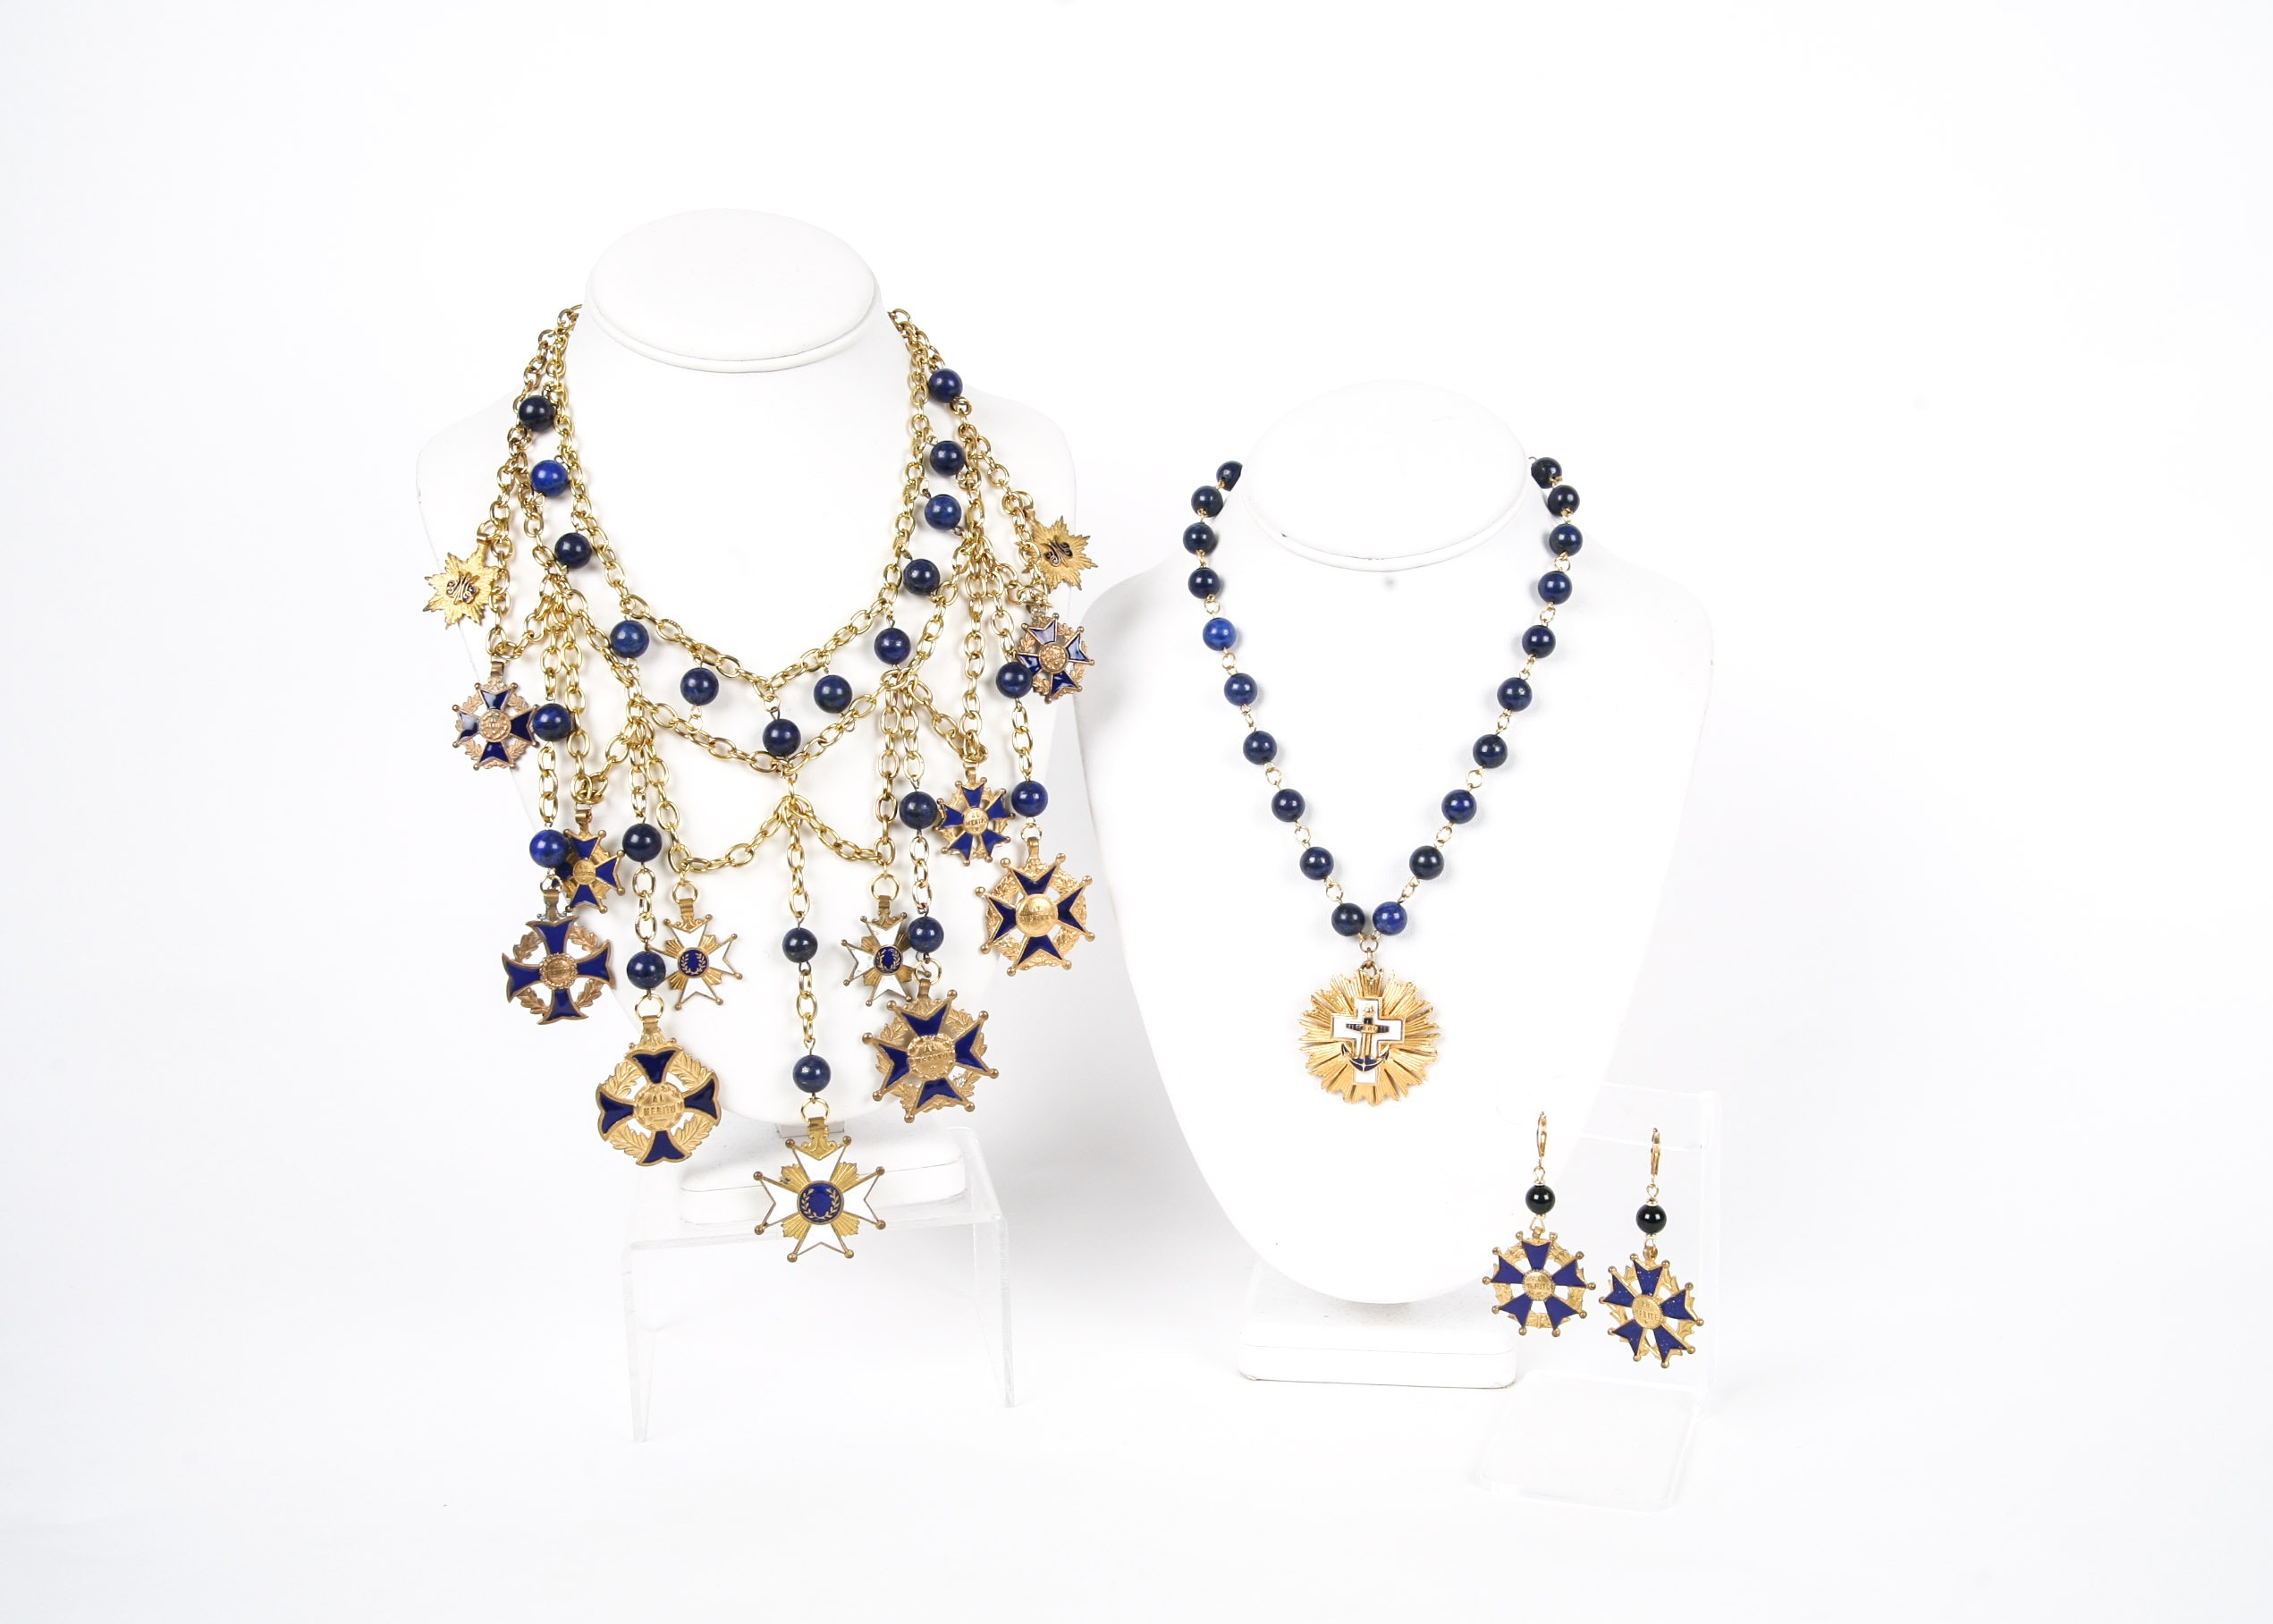 Medallion and Lapis Lazuli Necklaces and Earrings